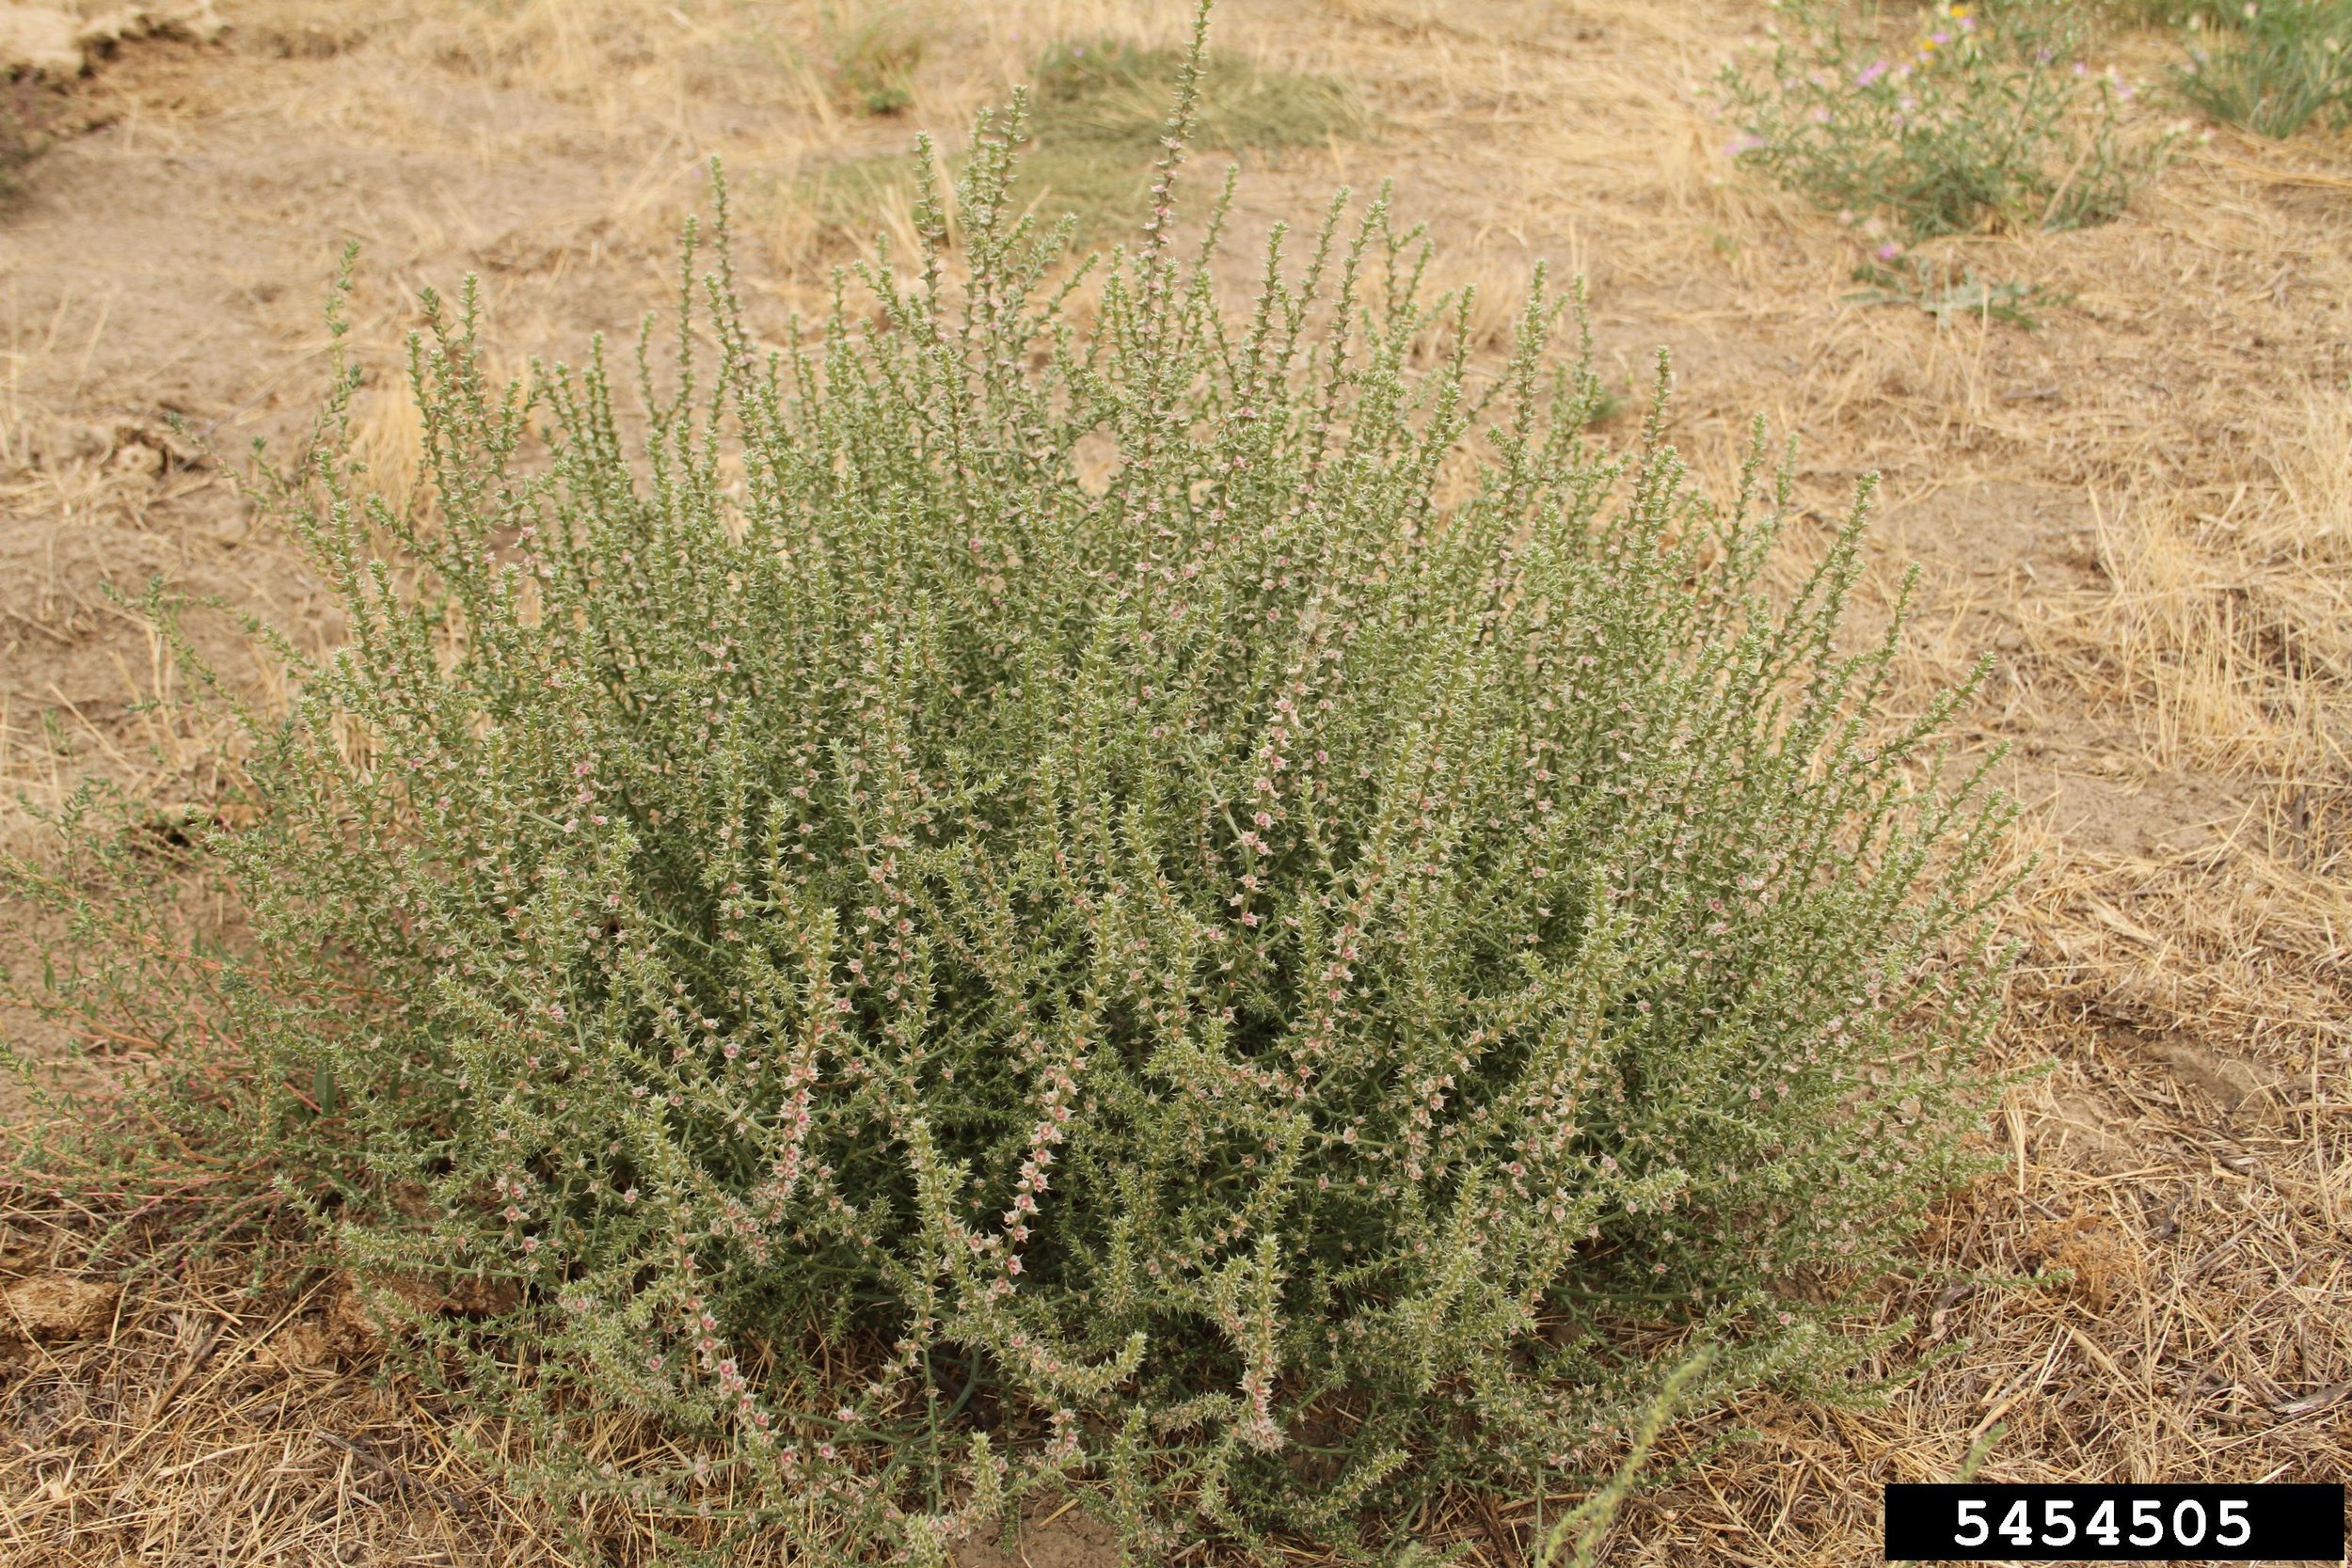 Russian thistle habit